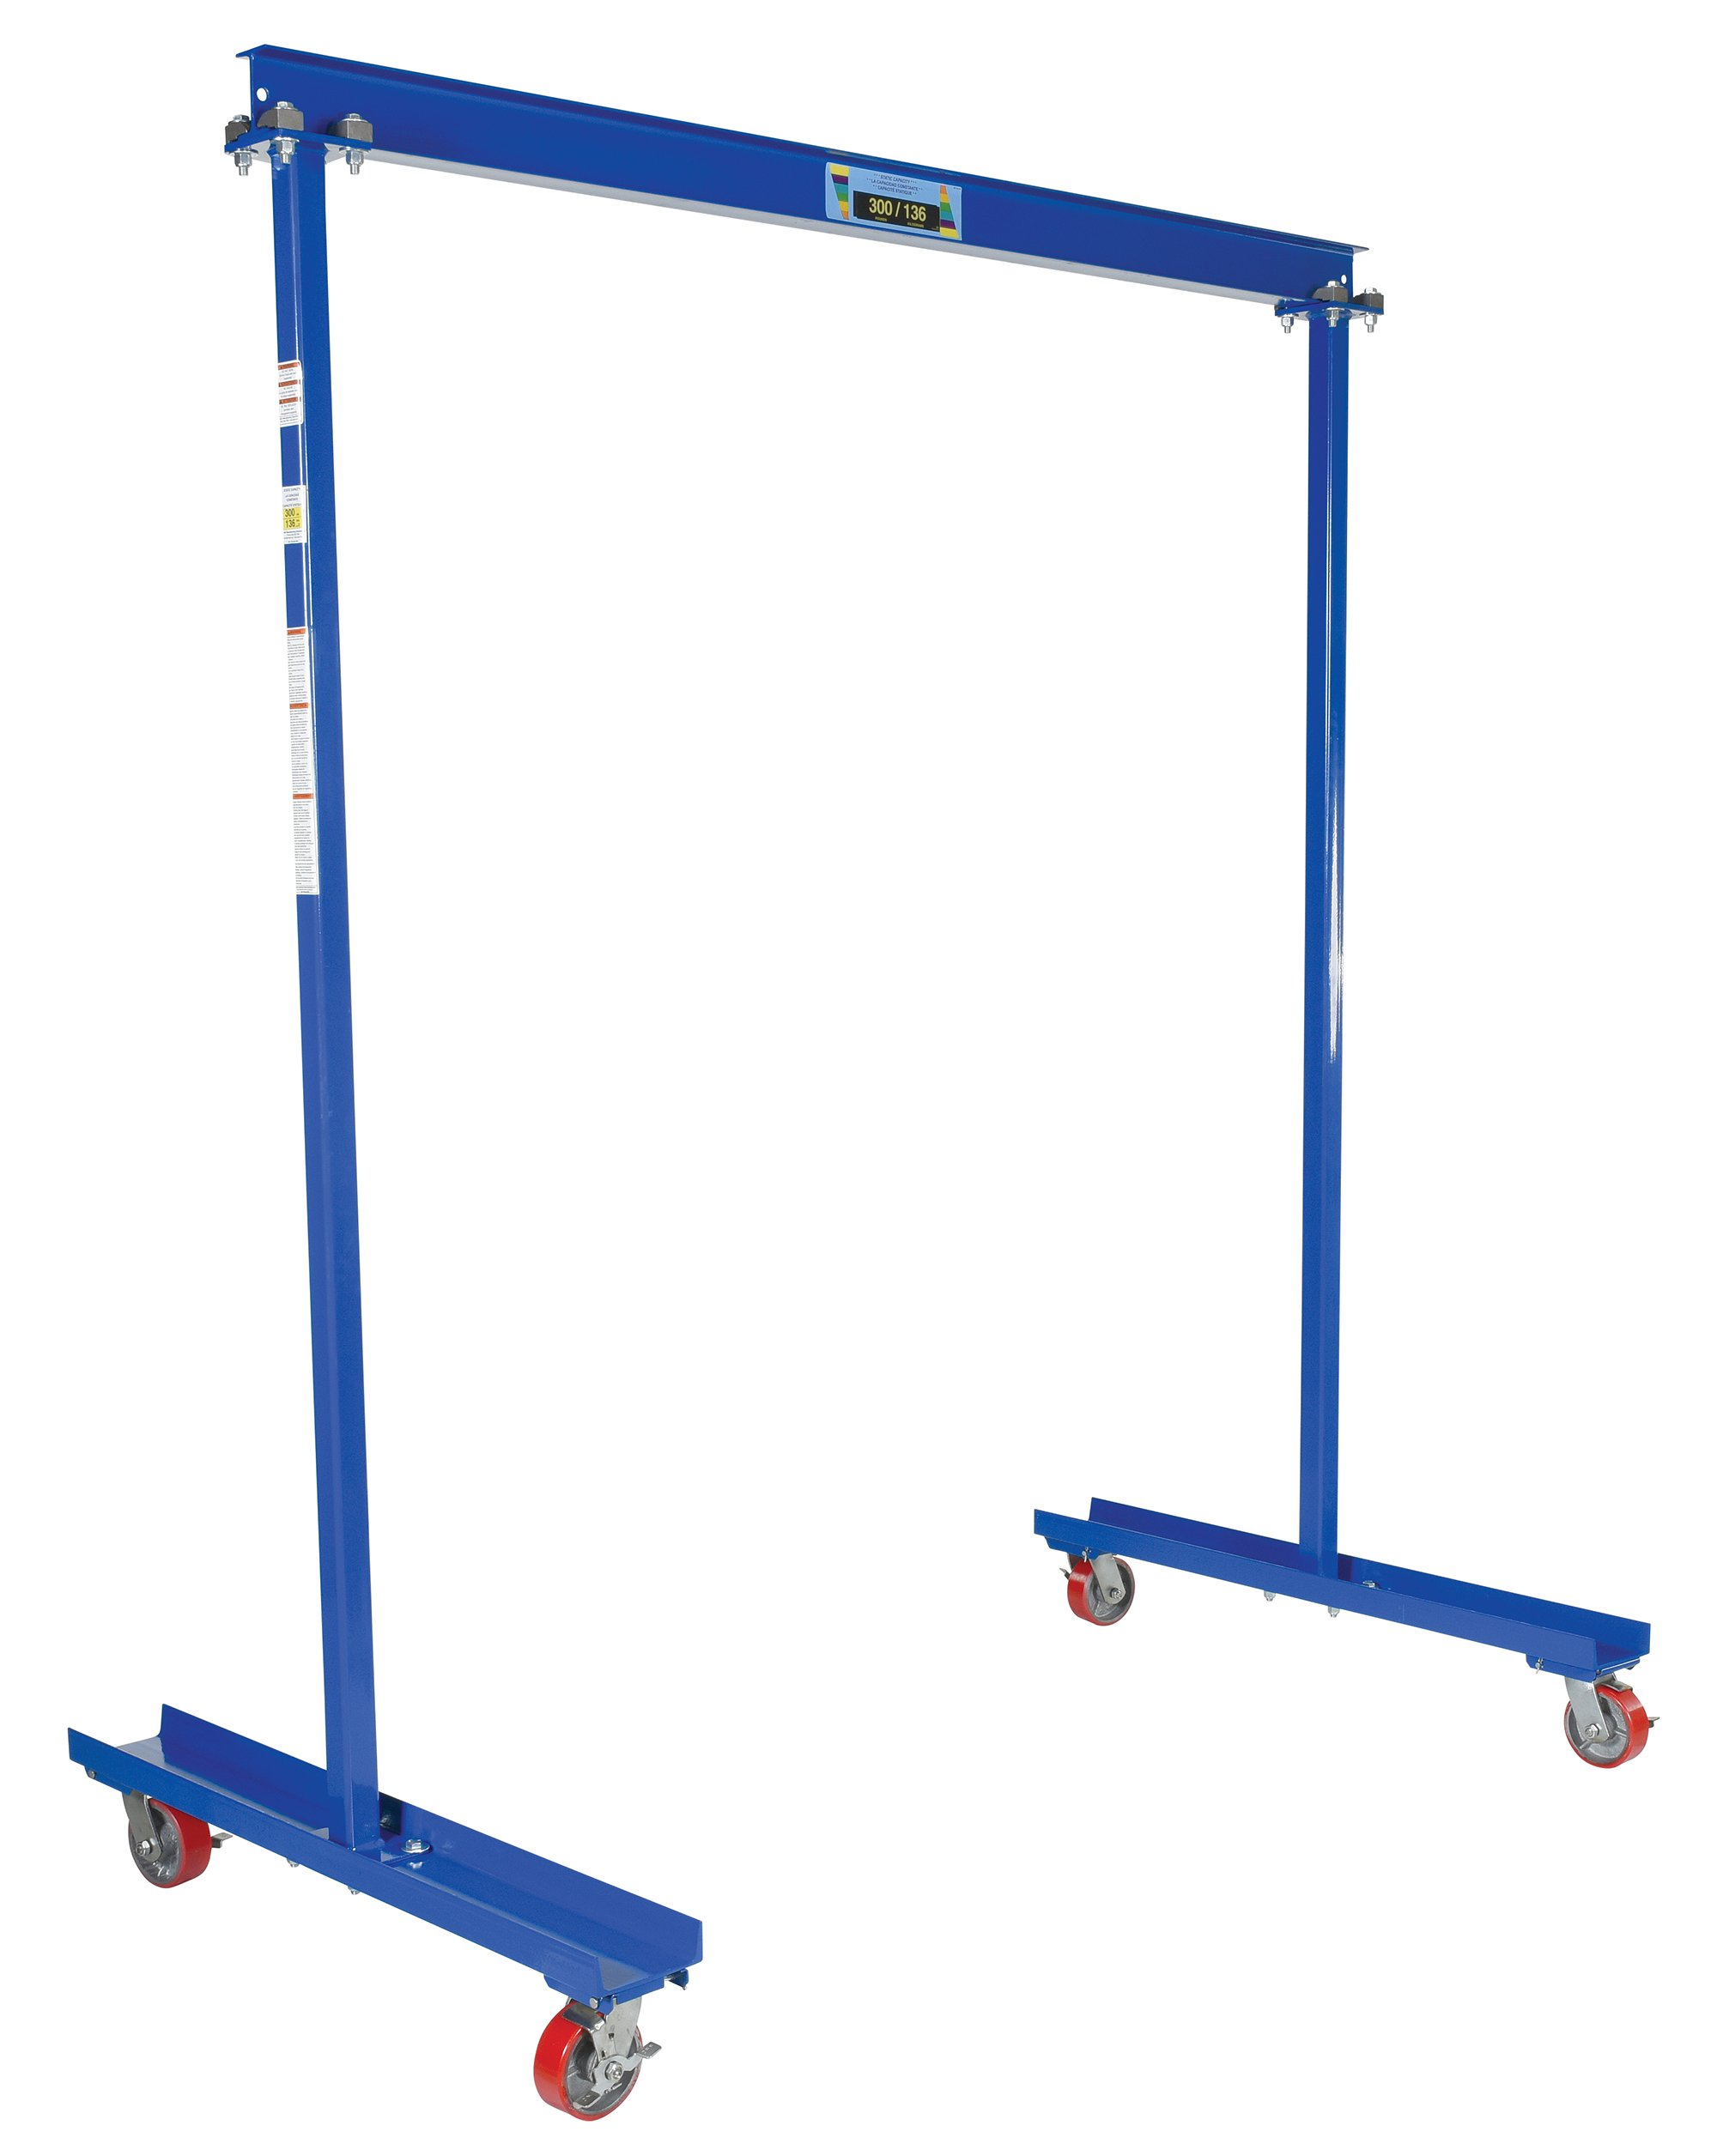 Vestil FPG-3 Work Area Portable Steel Gantry Crane, 300 lbs Capacity